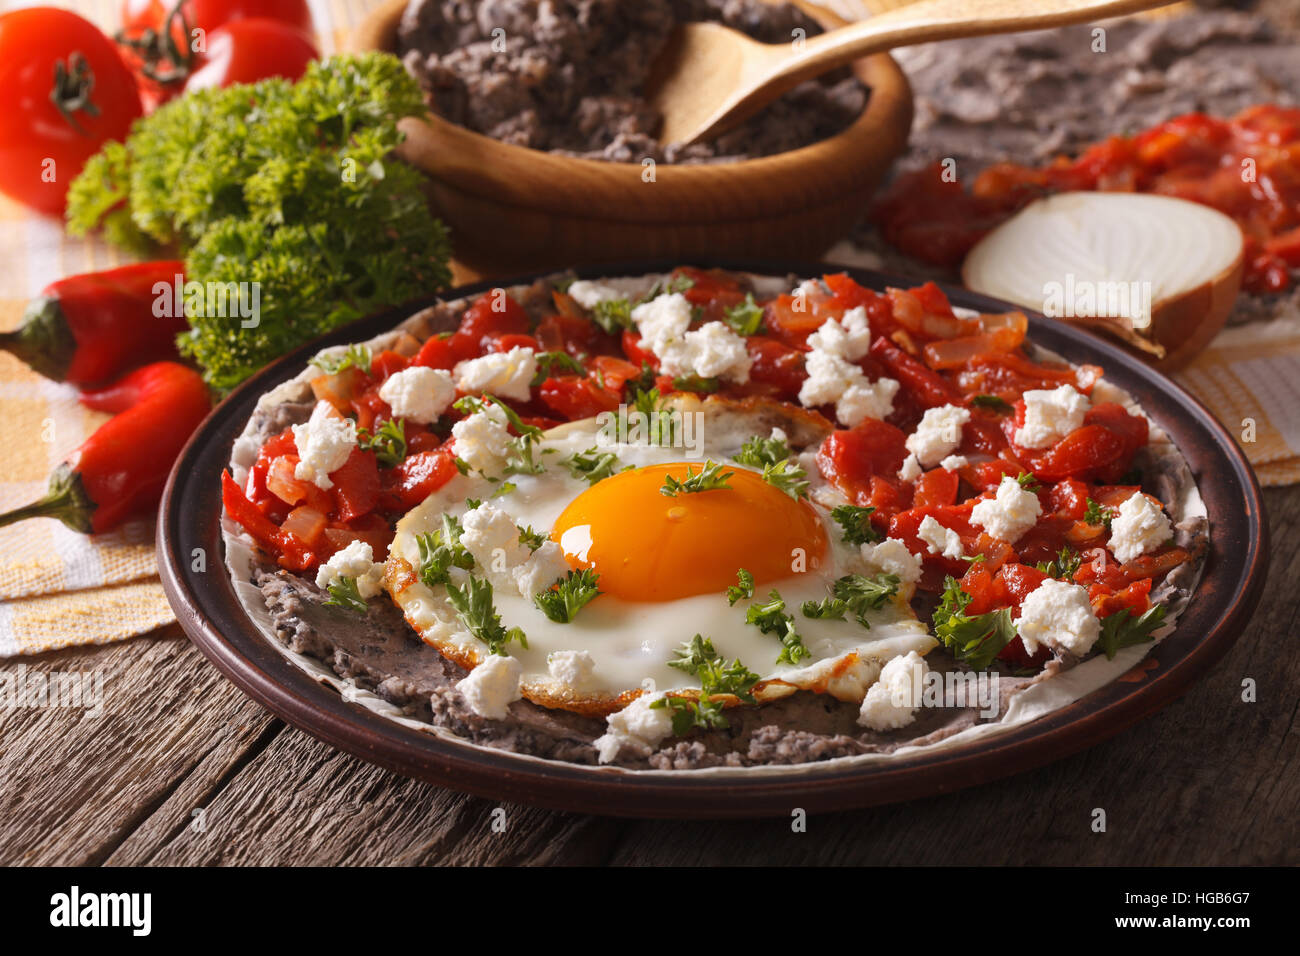 Mexican food: huevos rancheros close-up on a plate on the table. Horizontal - Stock Image